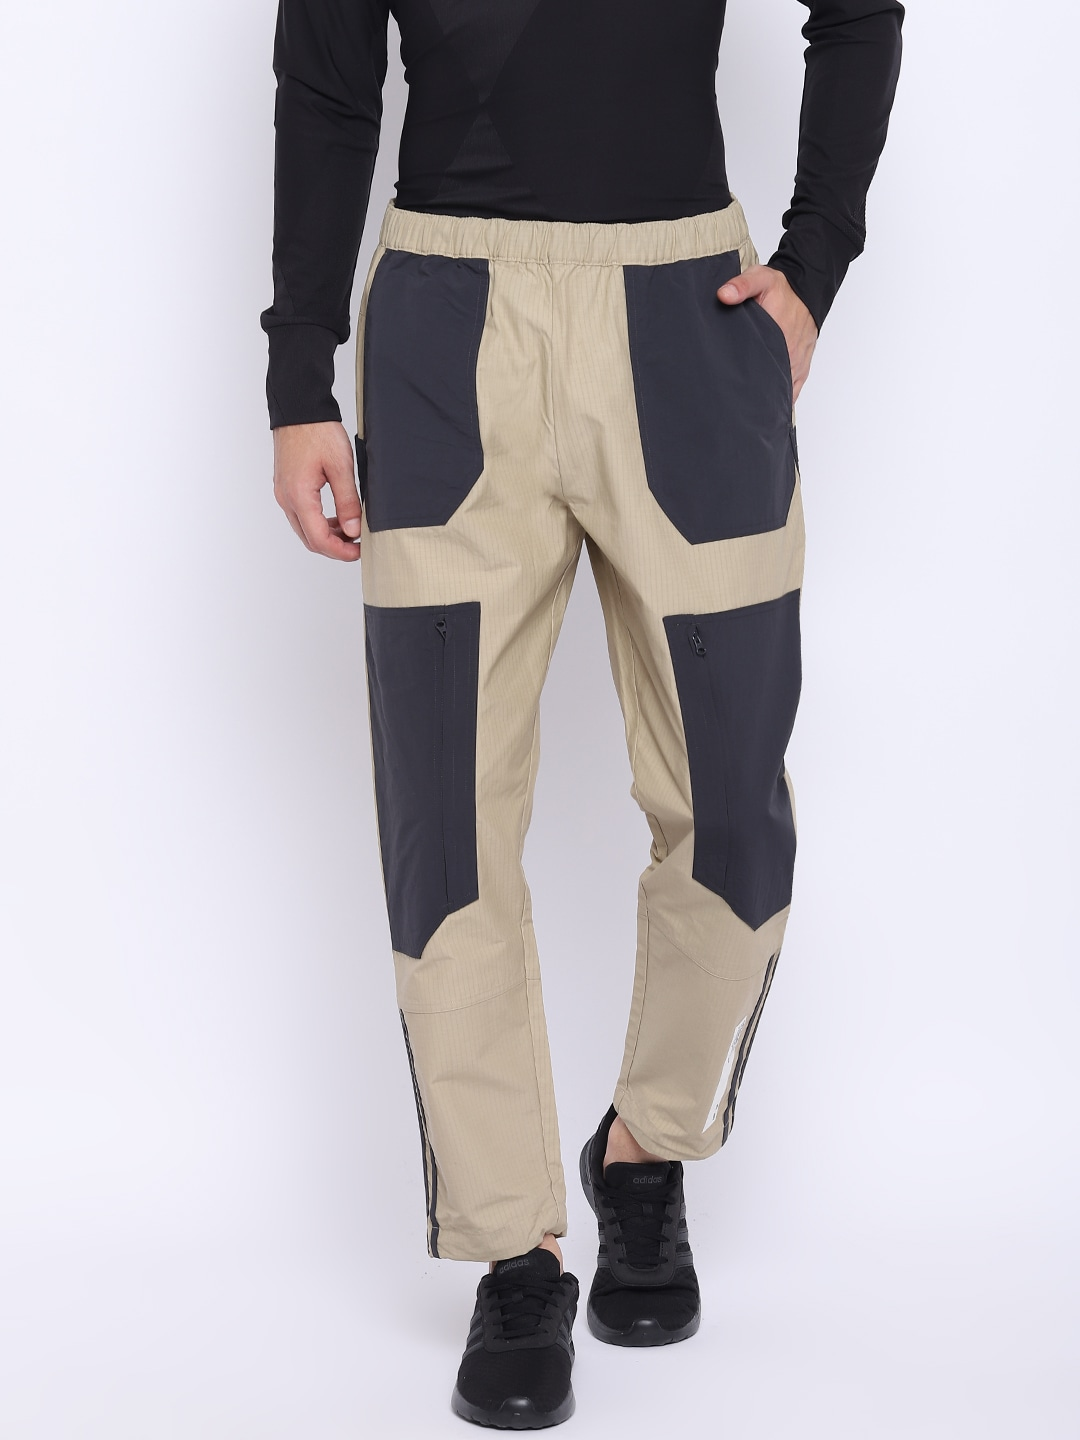 be7dfa8207f4 Adidas Fila Puma Wallets Track Pants Pants - Buy Adidas Fila Puma Wallets Track  Pants Pants online in India